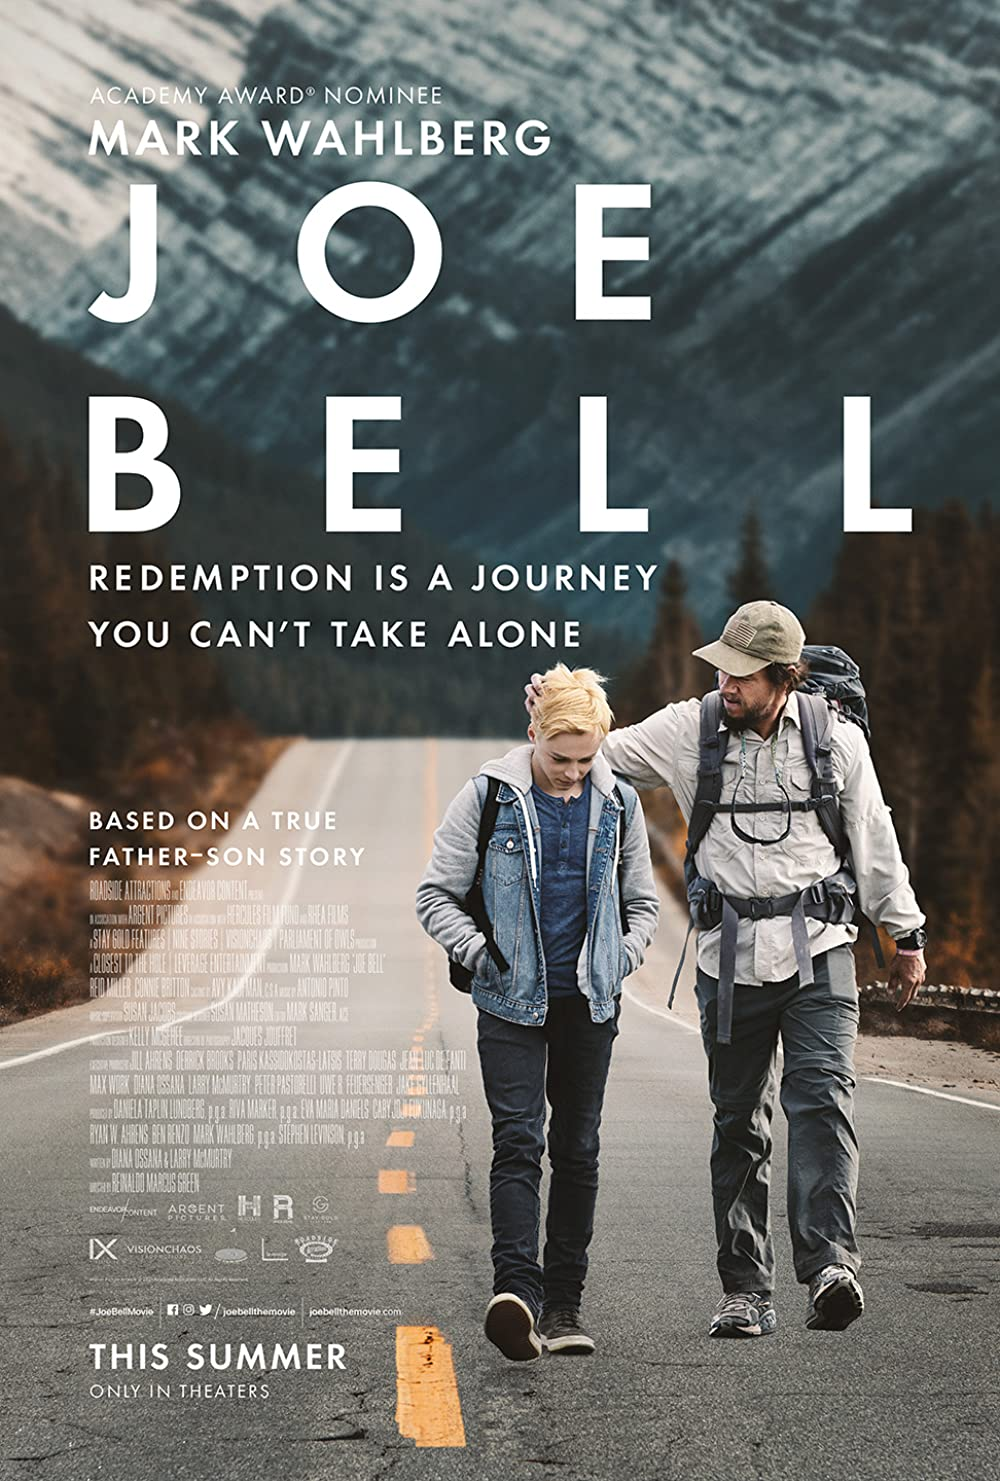 Download Joe Bell (2020) Tamil Dubbed (Voice Over) & English [Dual Audio] WebRip 720p [1XBET] Full Movie Online On 1xcinema.com